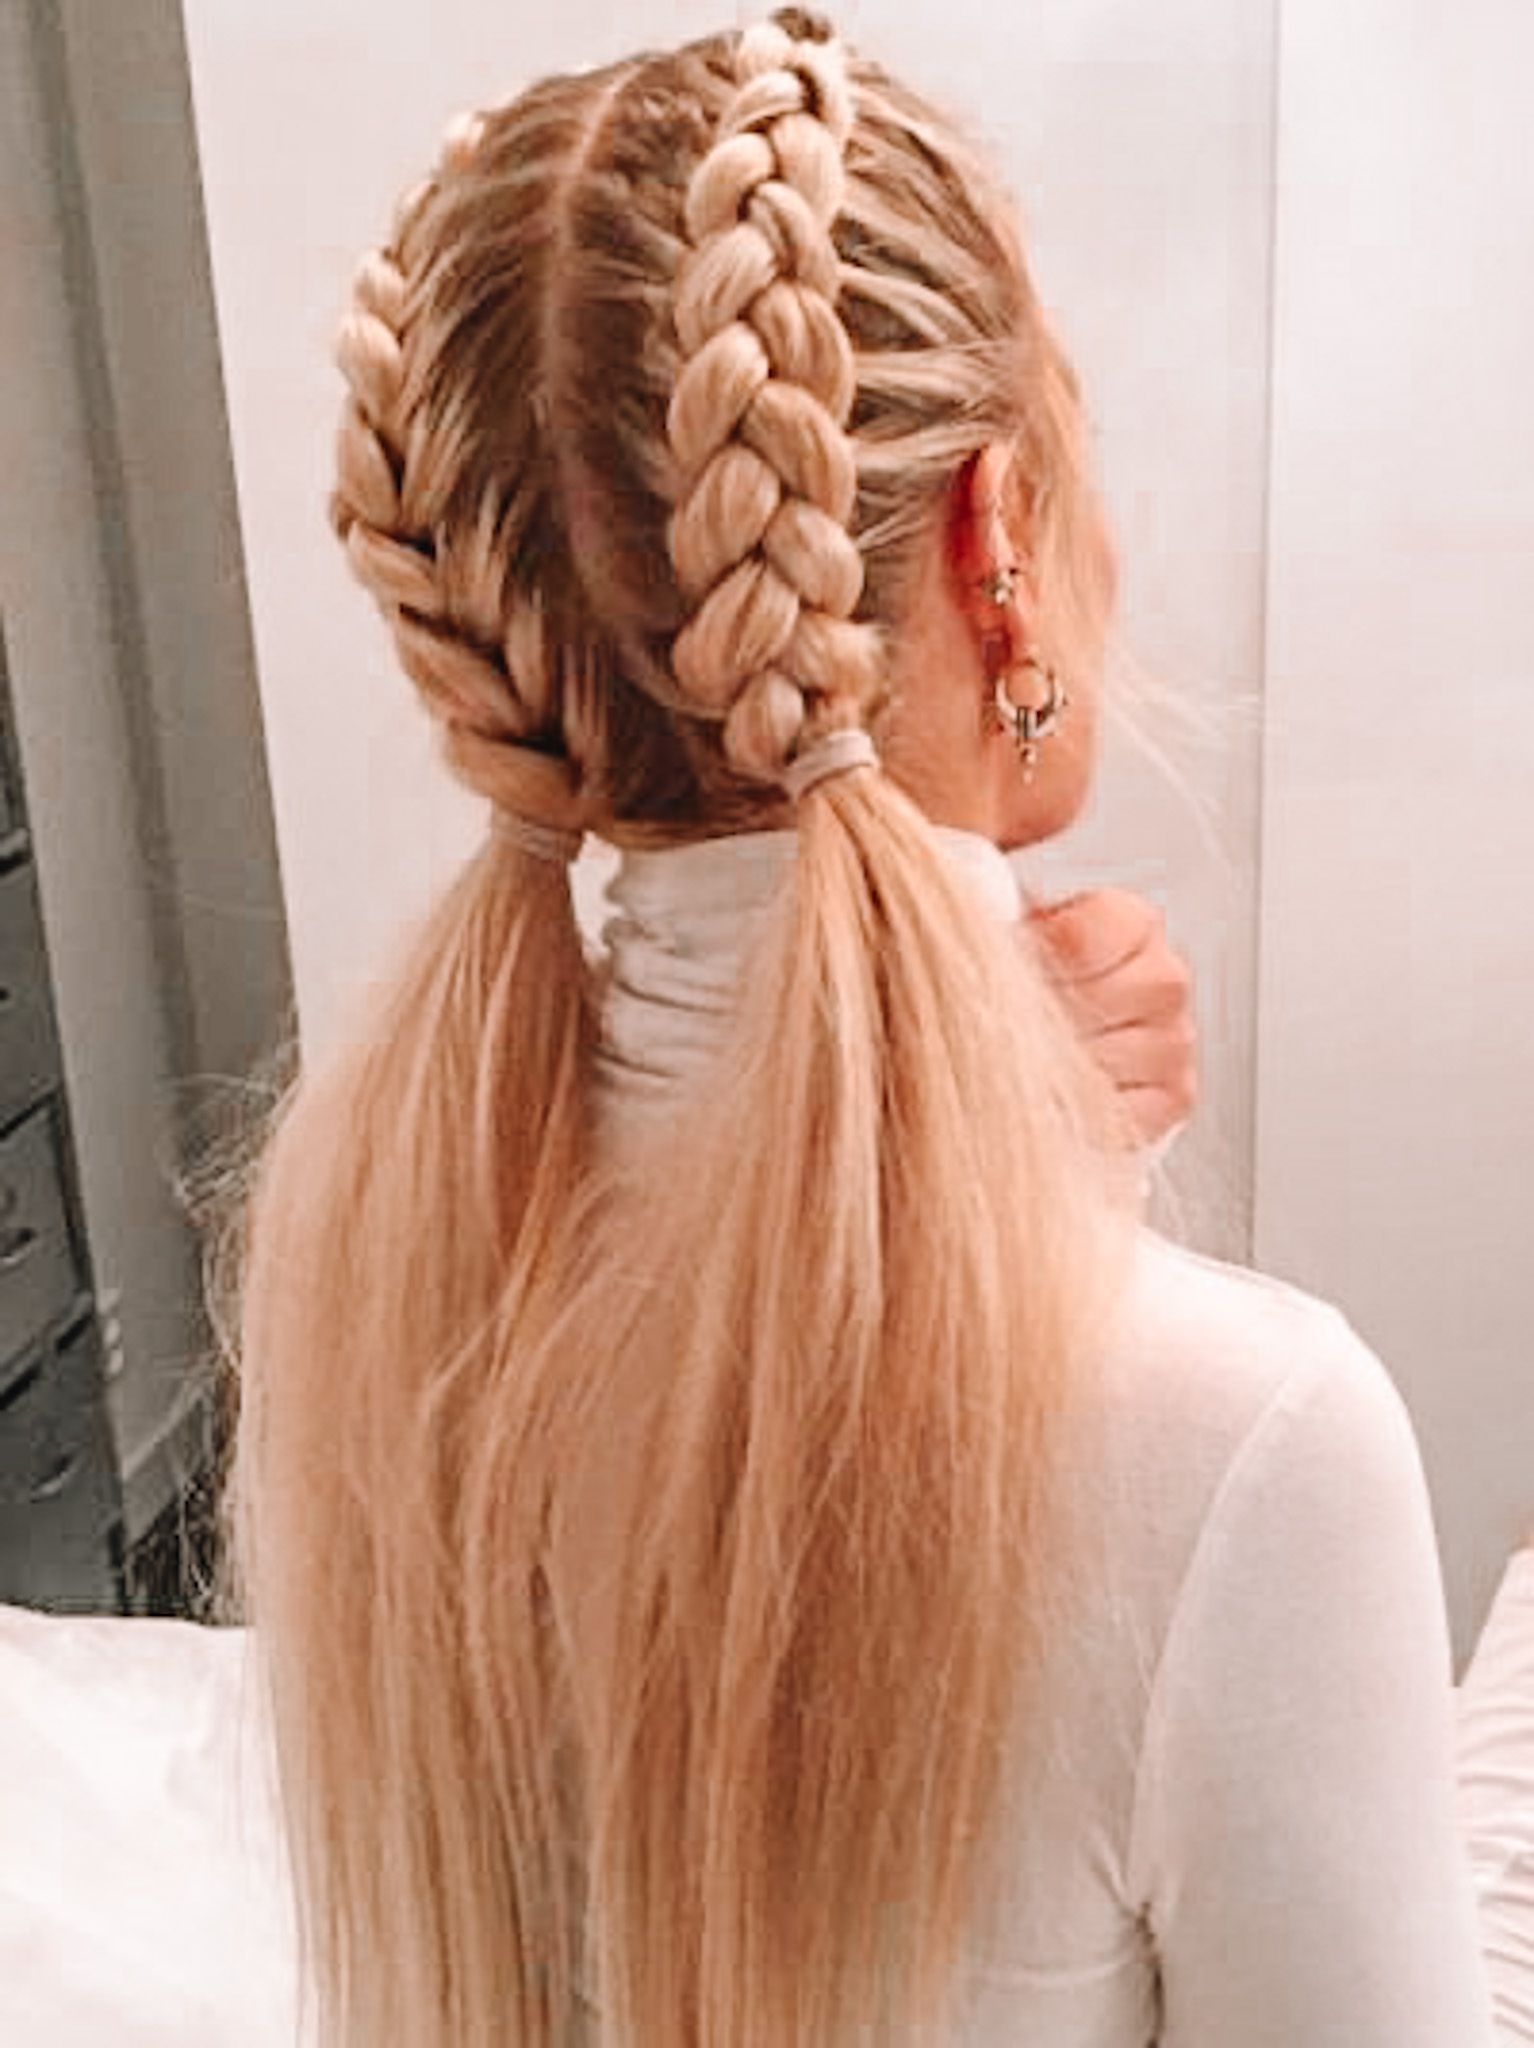 Pin By Michelle Grimsrud Coyle On My Wish List In 2020 Braided Hairstyles Hair Long Hair Styles